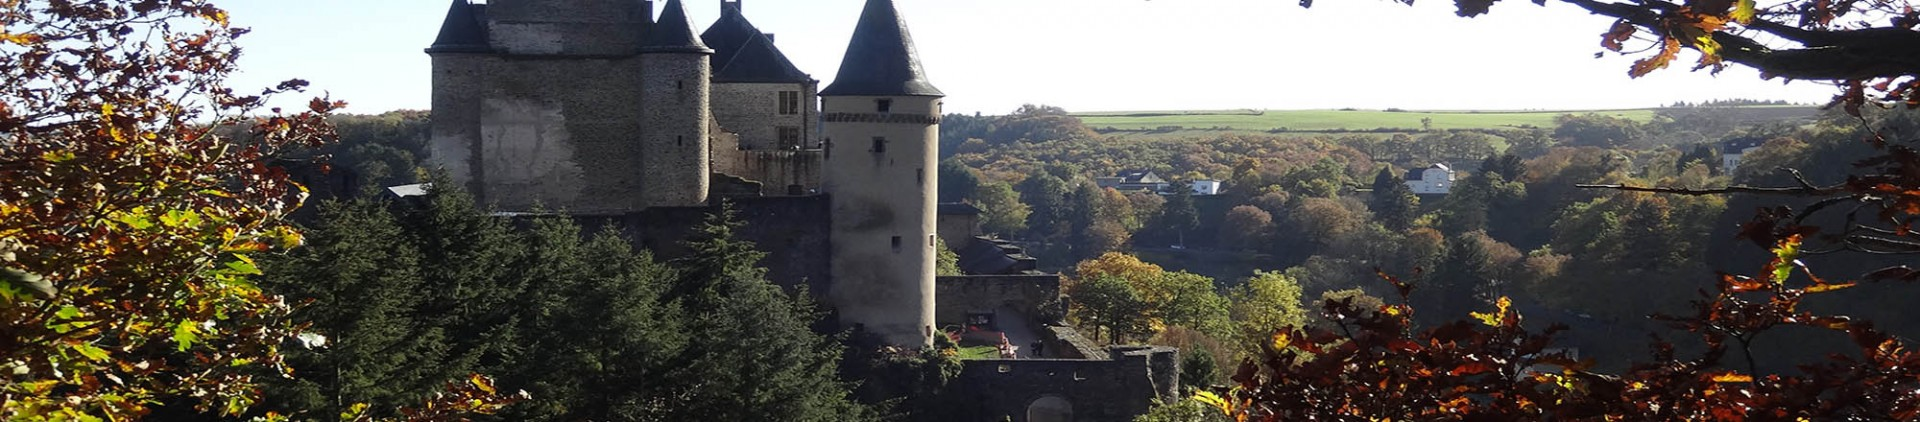 Luxembourg - Ardenne Incoming